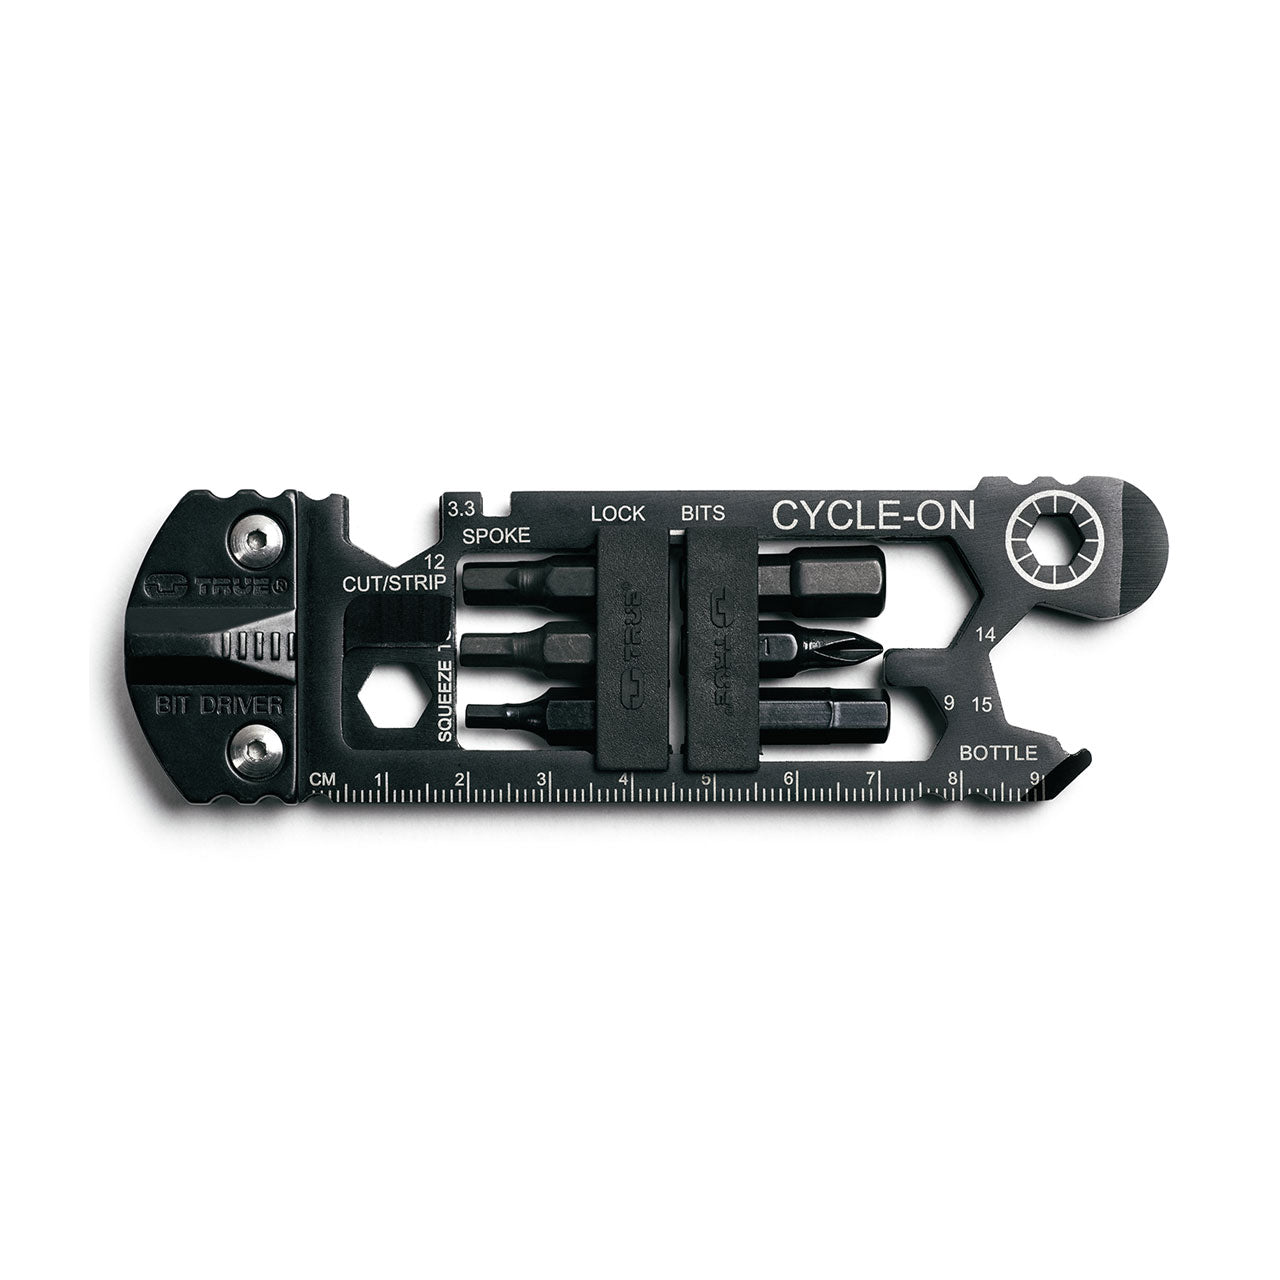 True Utility Cycle-On Multi-Tool